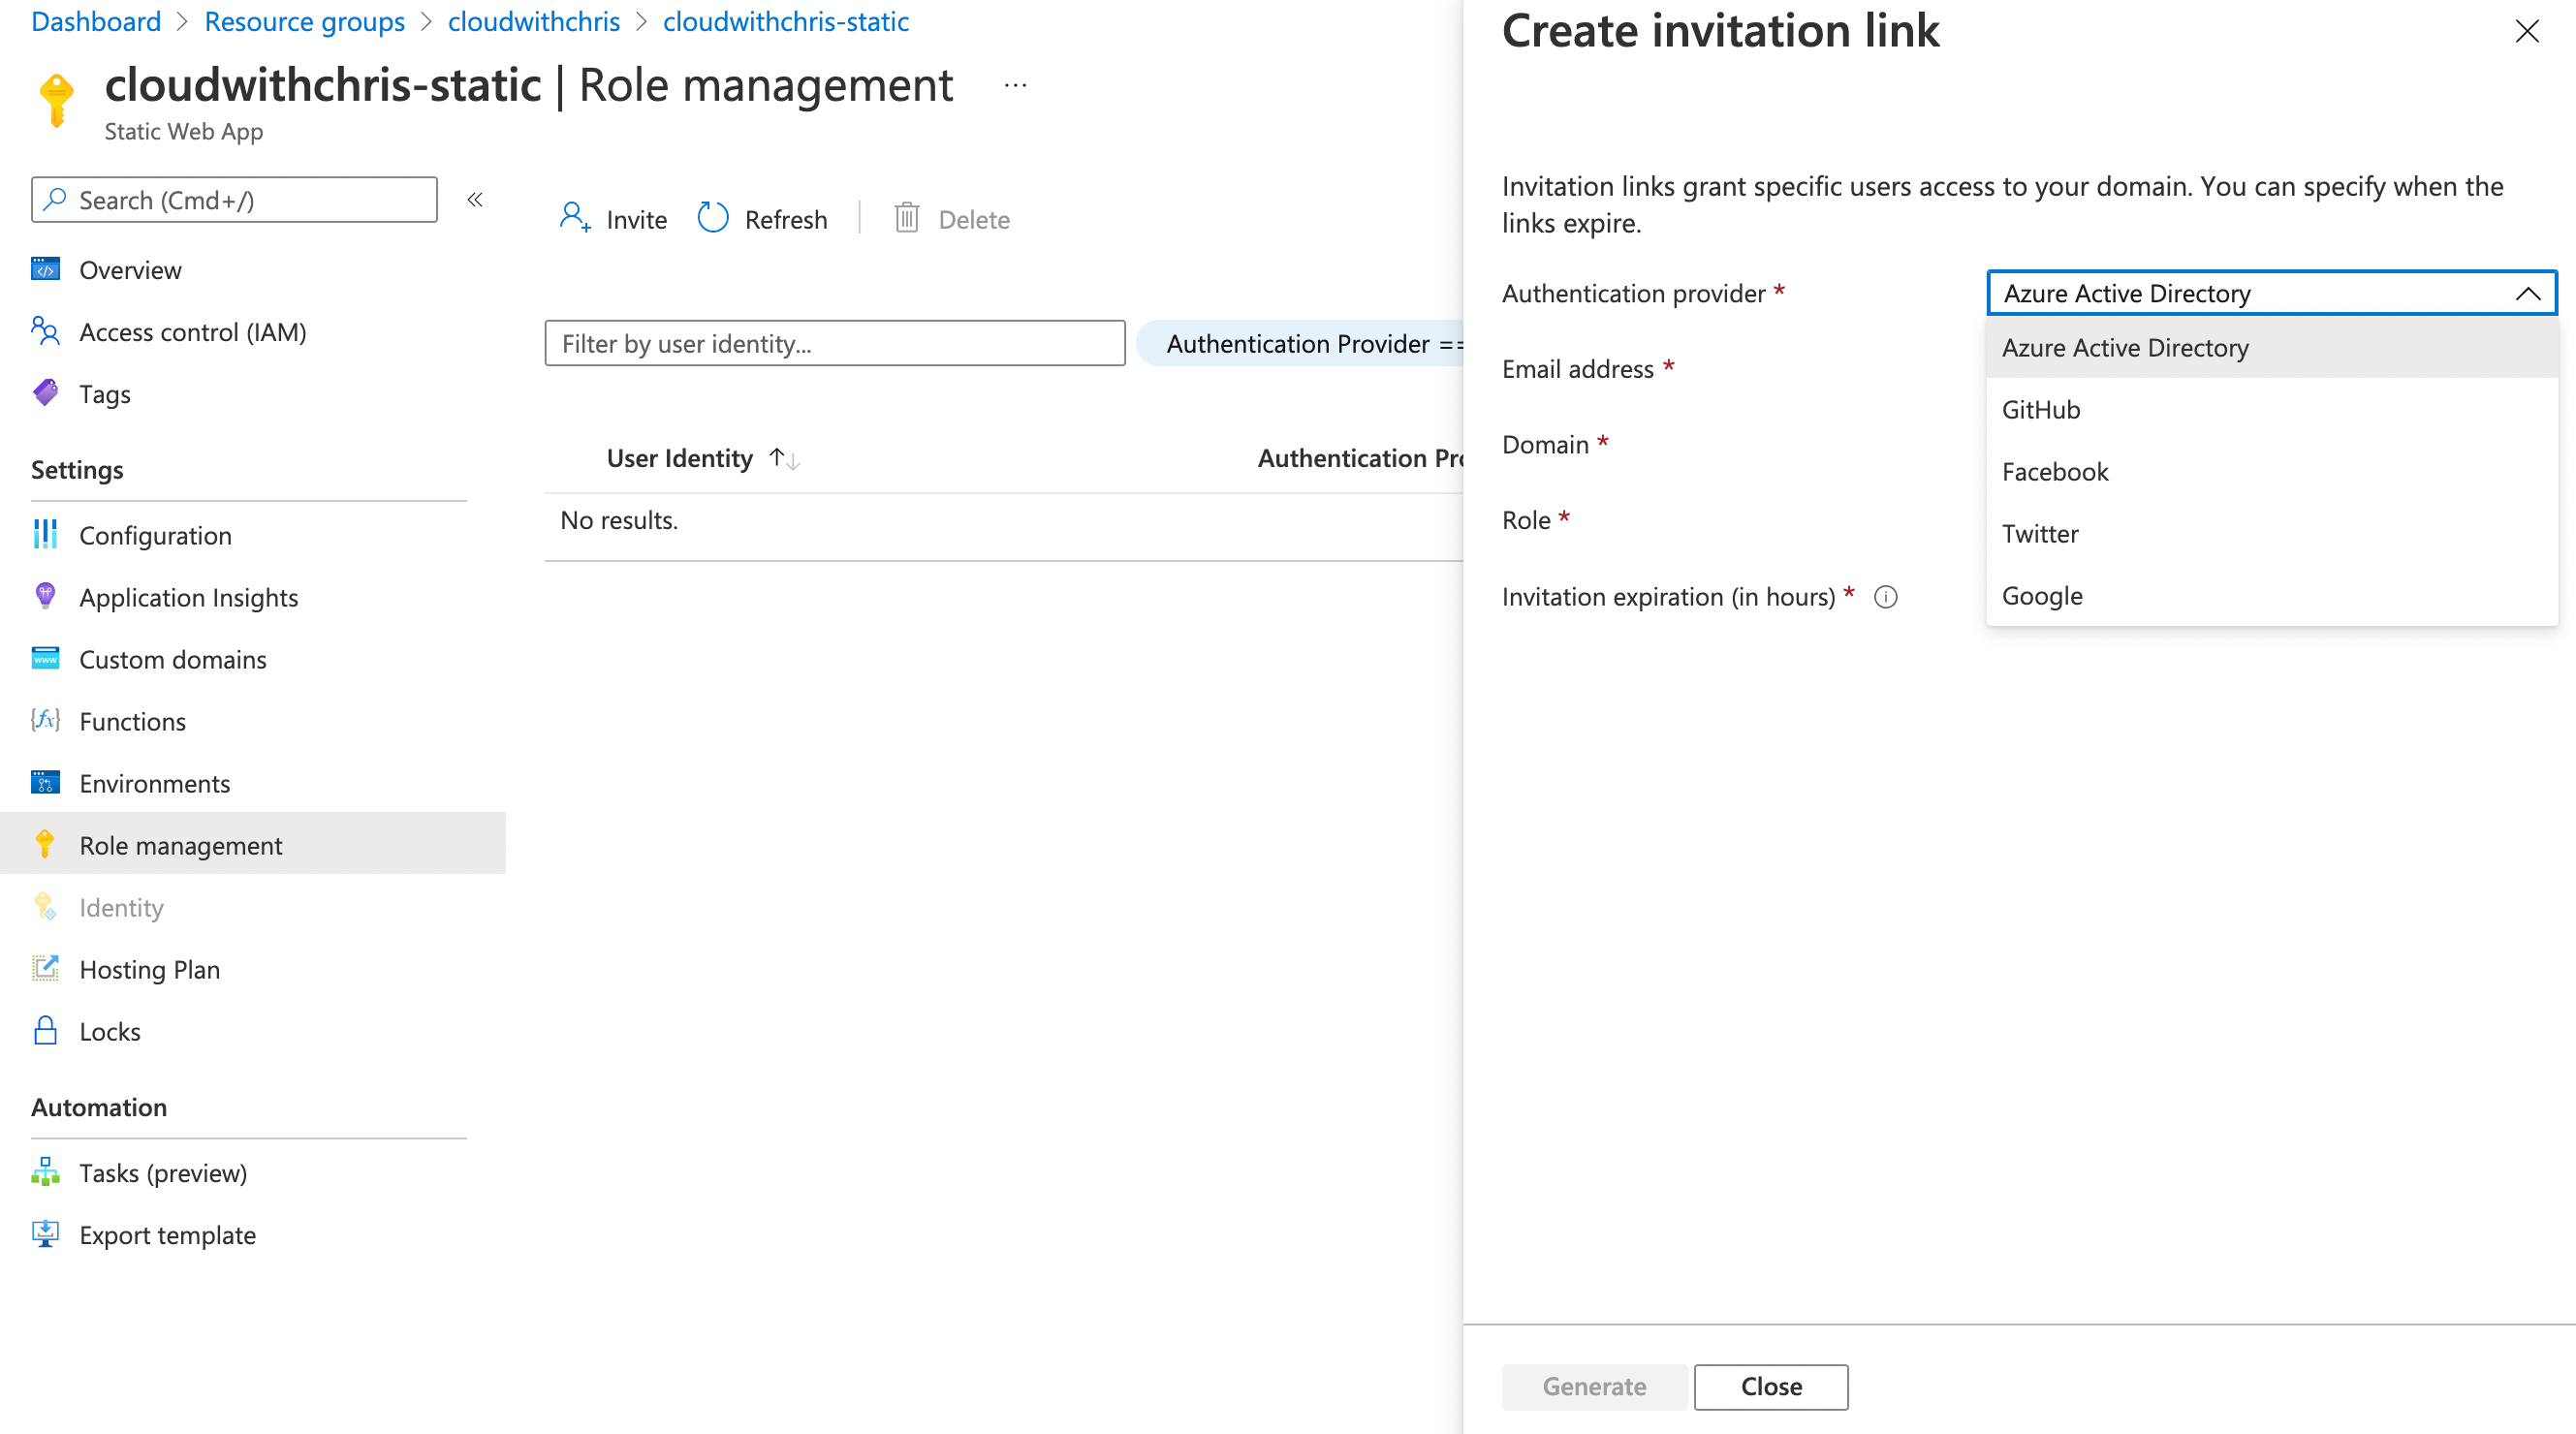 Screenshot of the role management/authentication/identity functionality in Static Web Apps